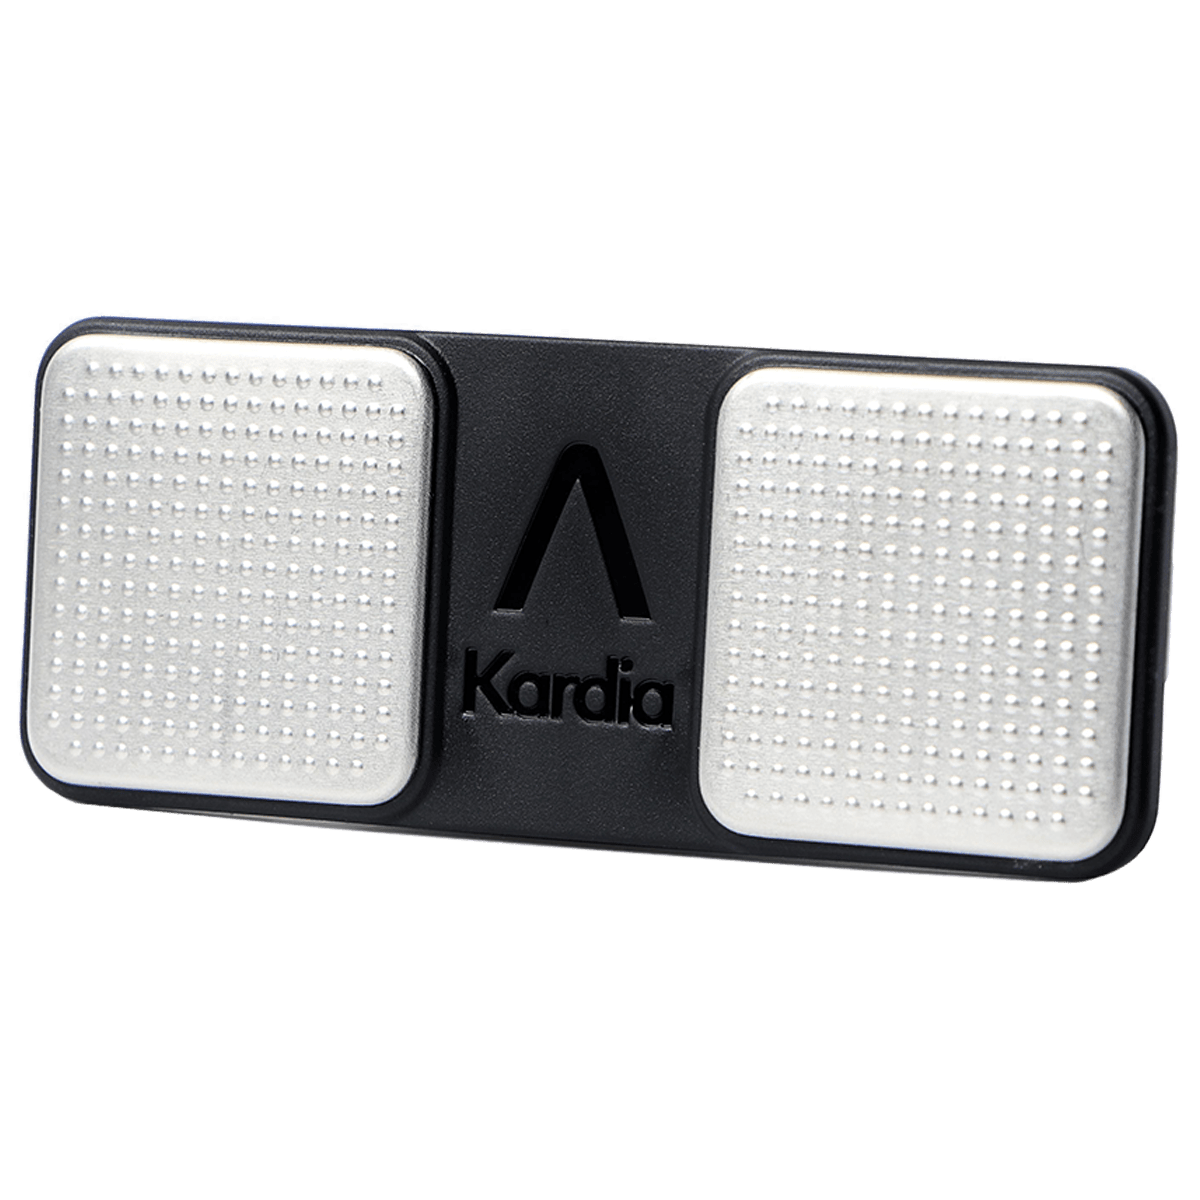 Alivecor KardiaMobile Heart Health Monitor (Captures EKG In 30 Seconds, AC-009-UA-C, Silver/Black)